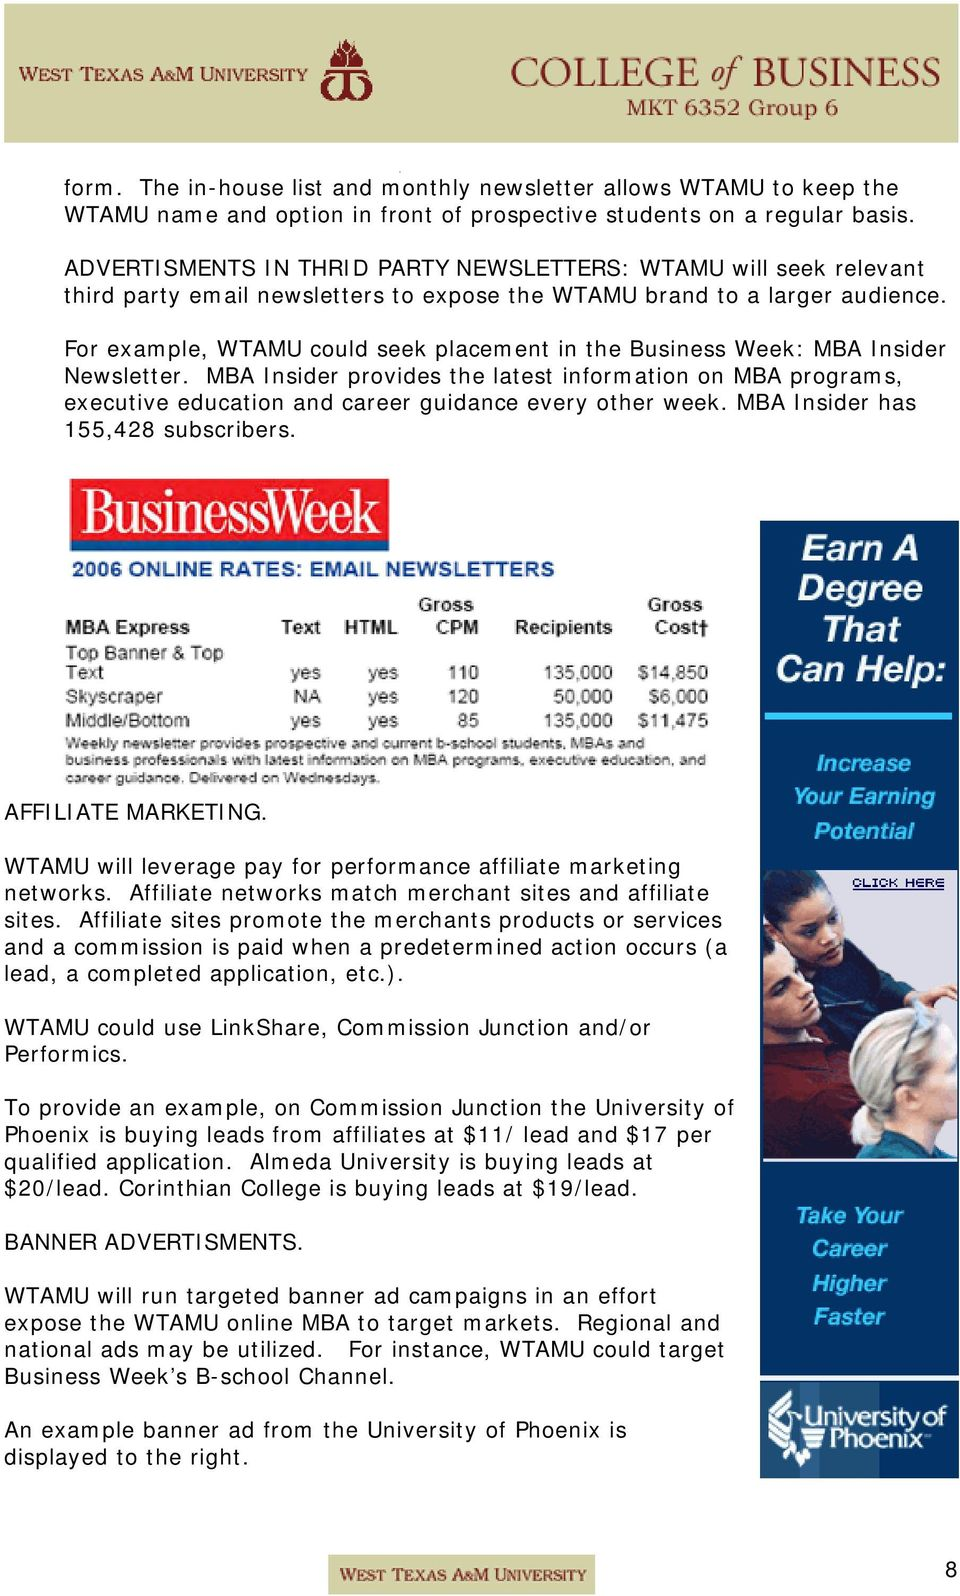 For example, WTAMU could seek placement in the Business Week: MBA Insider Newsletter.